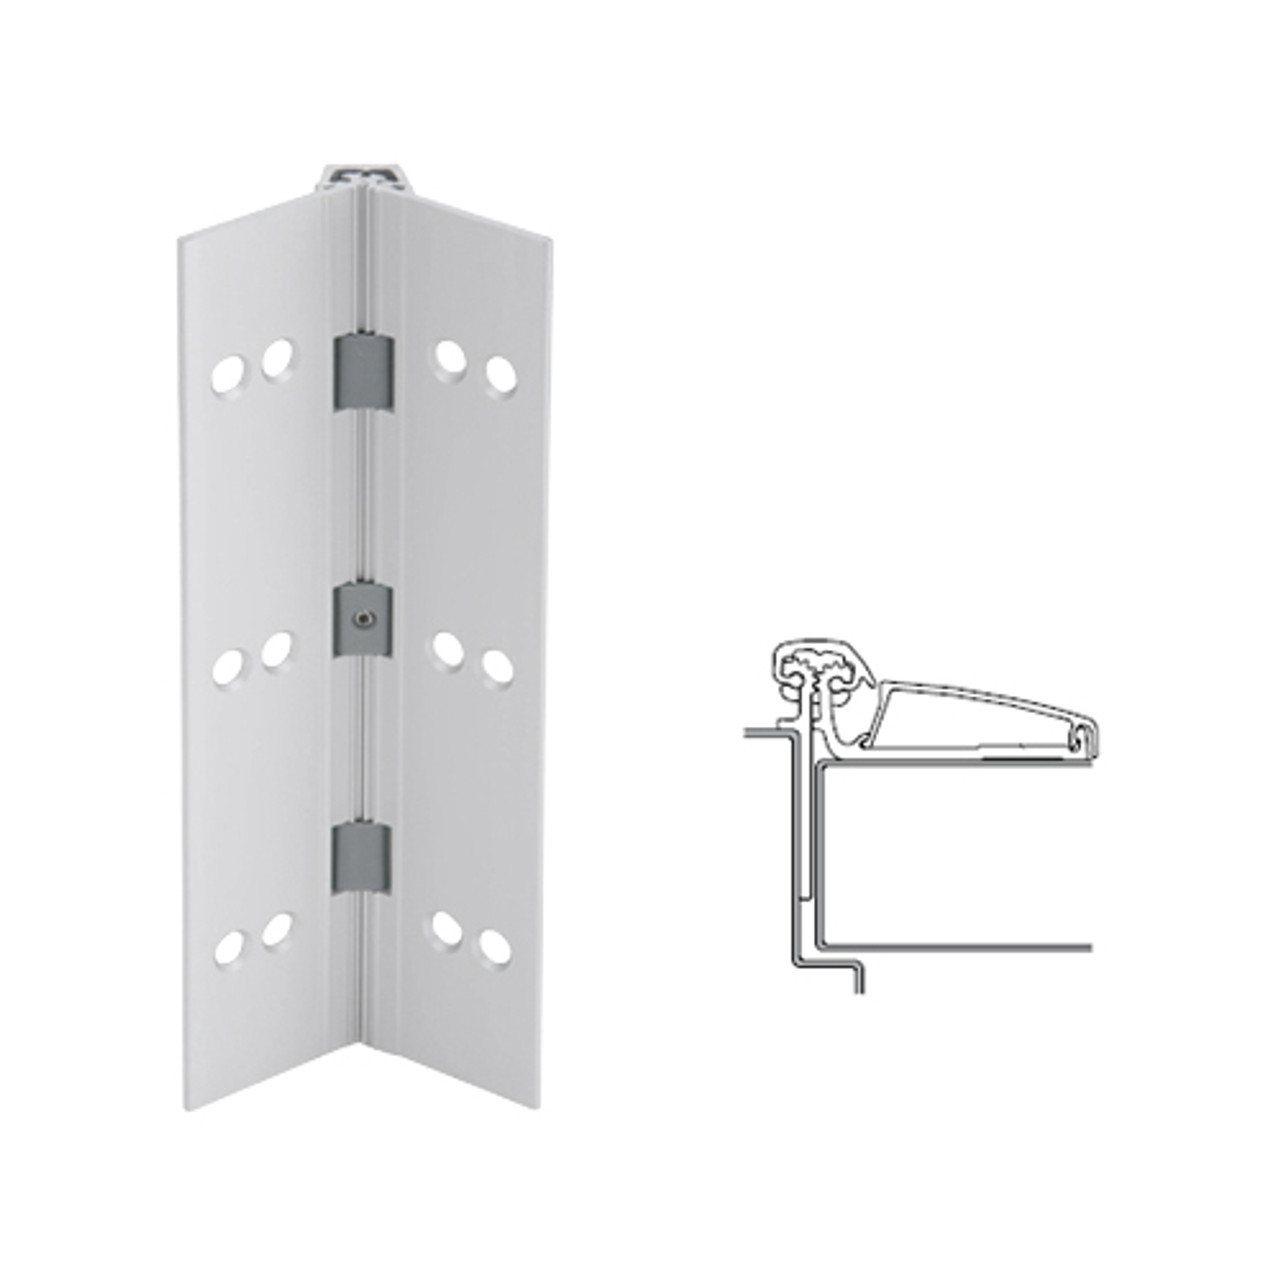 045XY-US28-85-WD IVES Adjustable Half Surface Continuous Geared Hinges with Wood Screws in Satin Aluminum